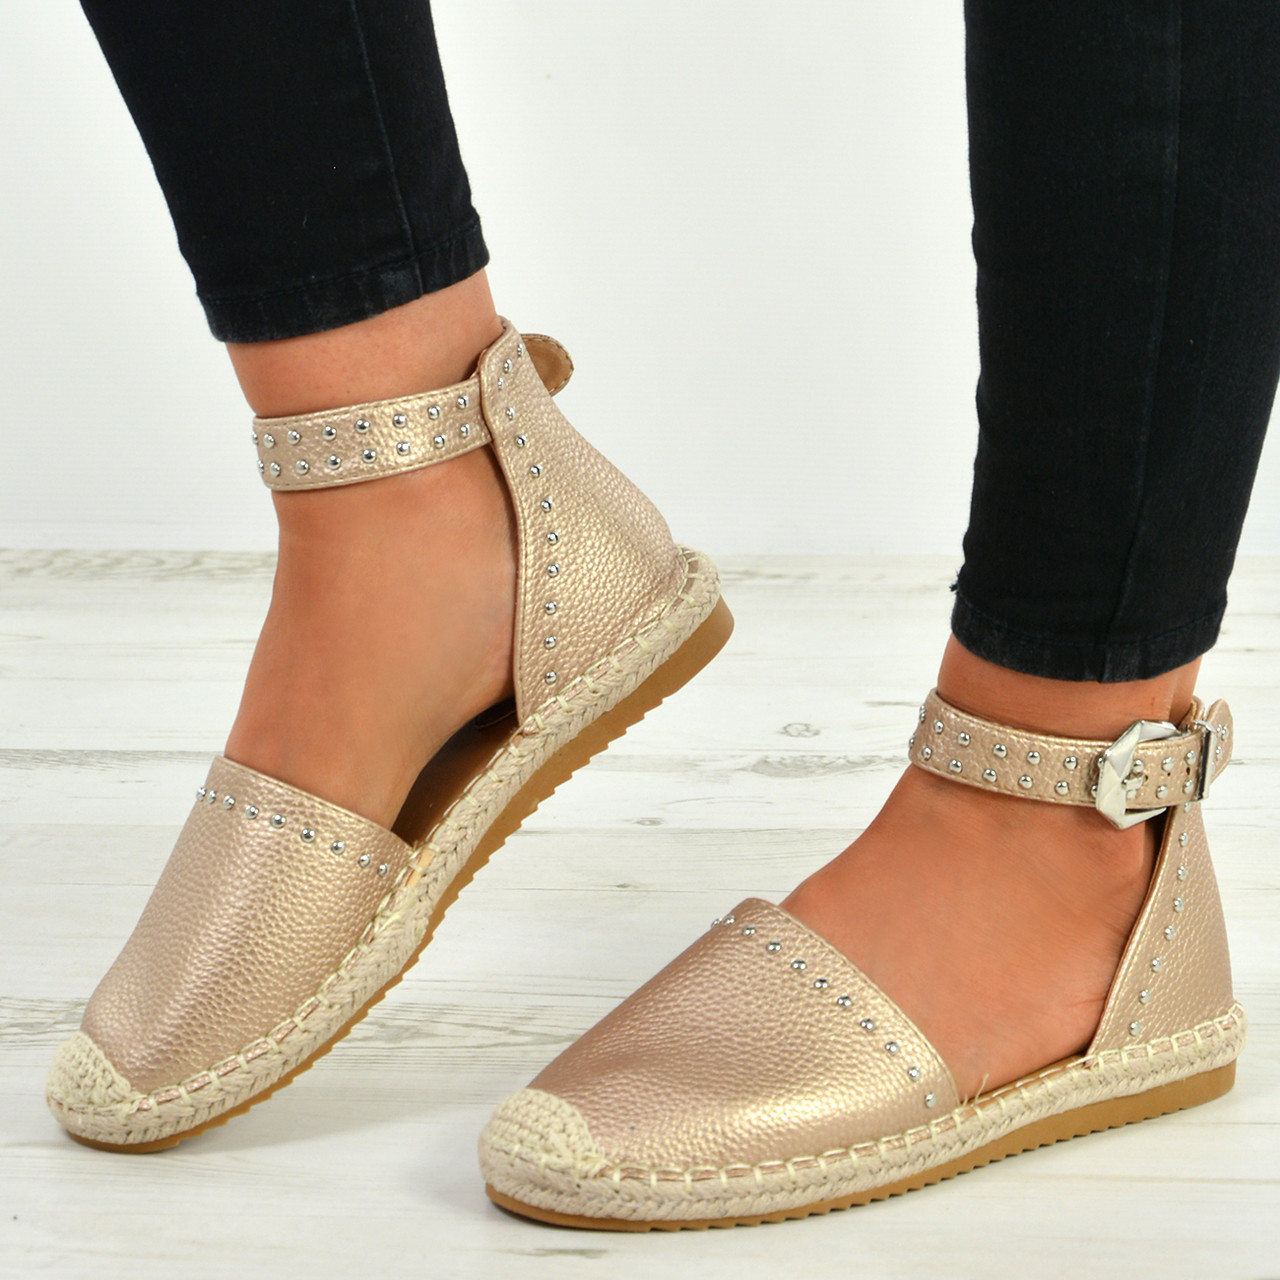 def9e86b9c508 New Womens Ankle Strap Espadrille Flats Studded Comfy Summer Shoes Size Uk